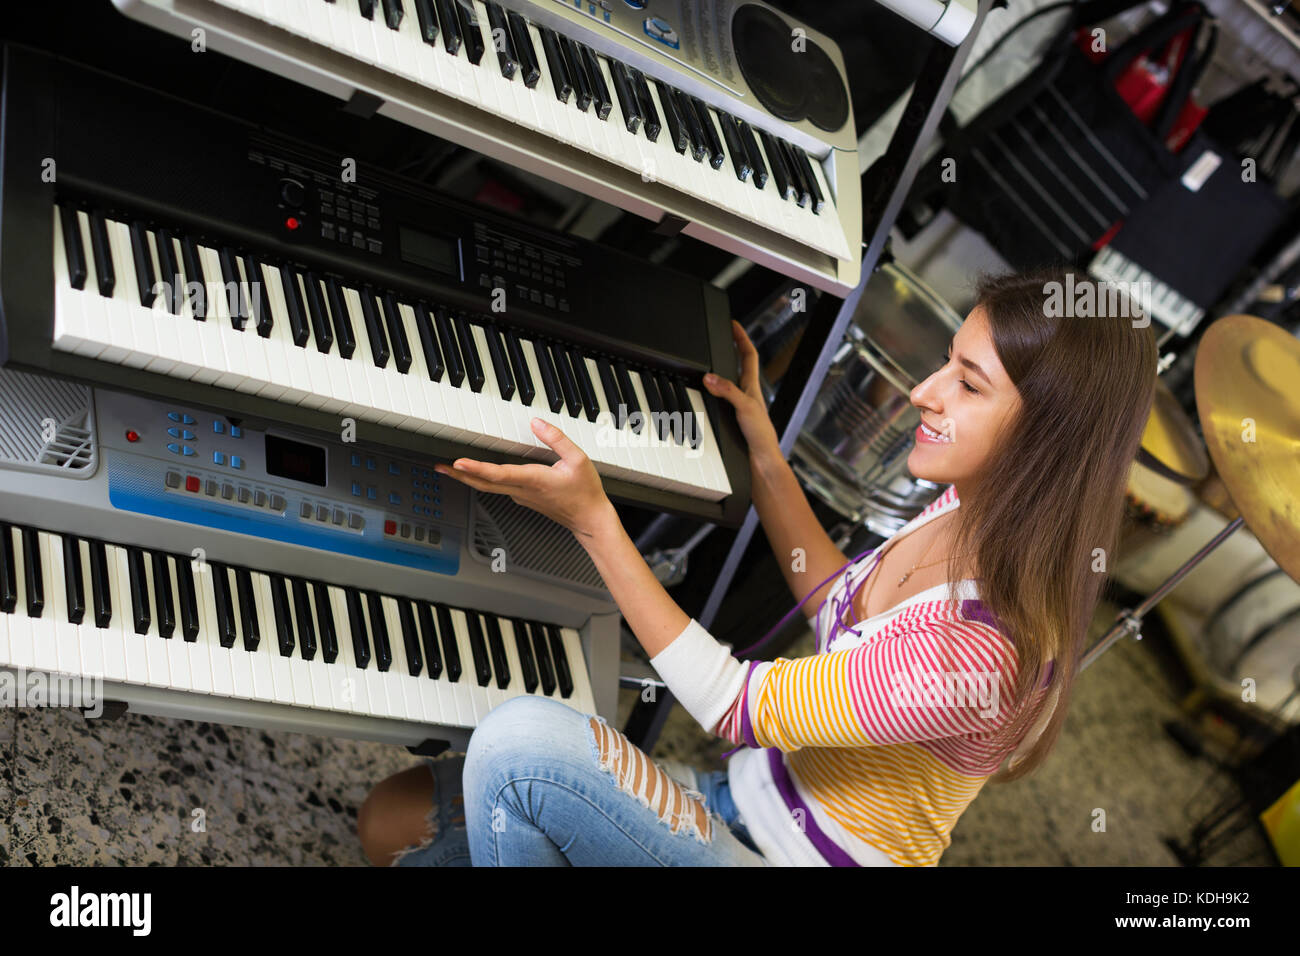 Happy adult girl selecting control keyboard for synthesiser in shop - Stock Image